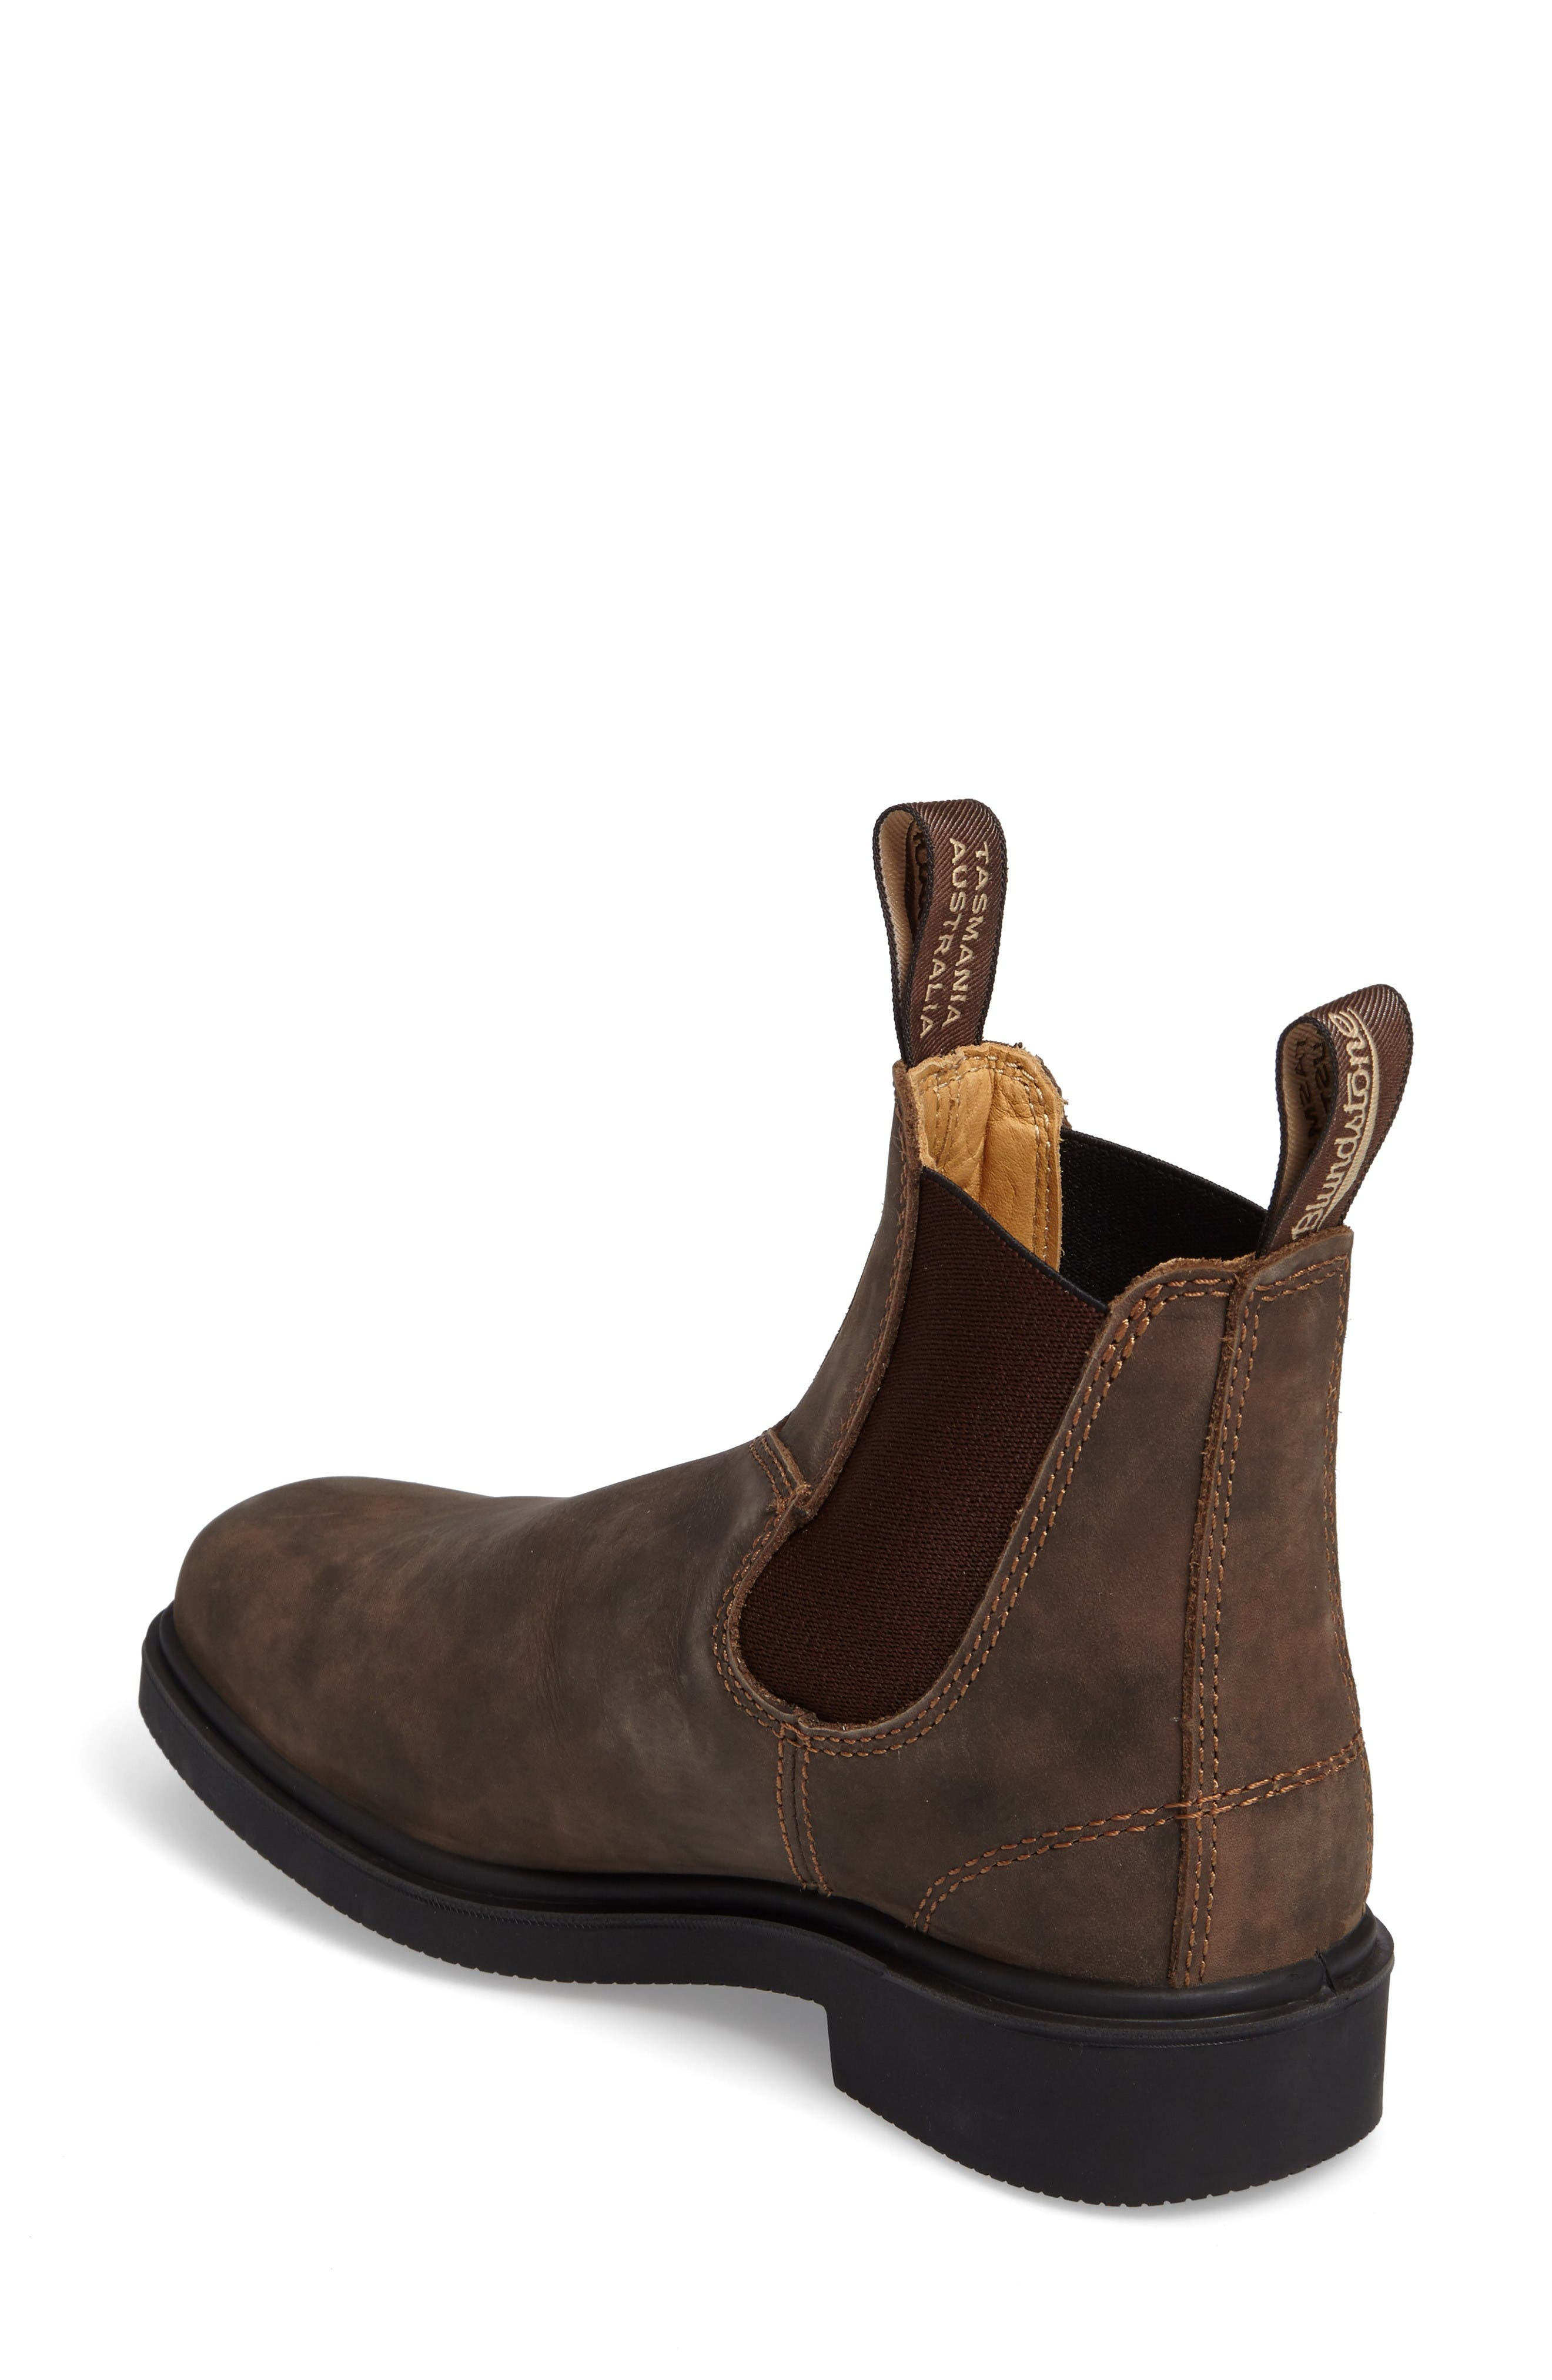 f57806a19ed Women s Chelsea Boots